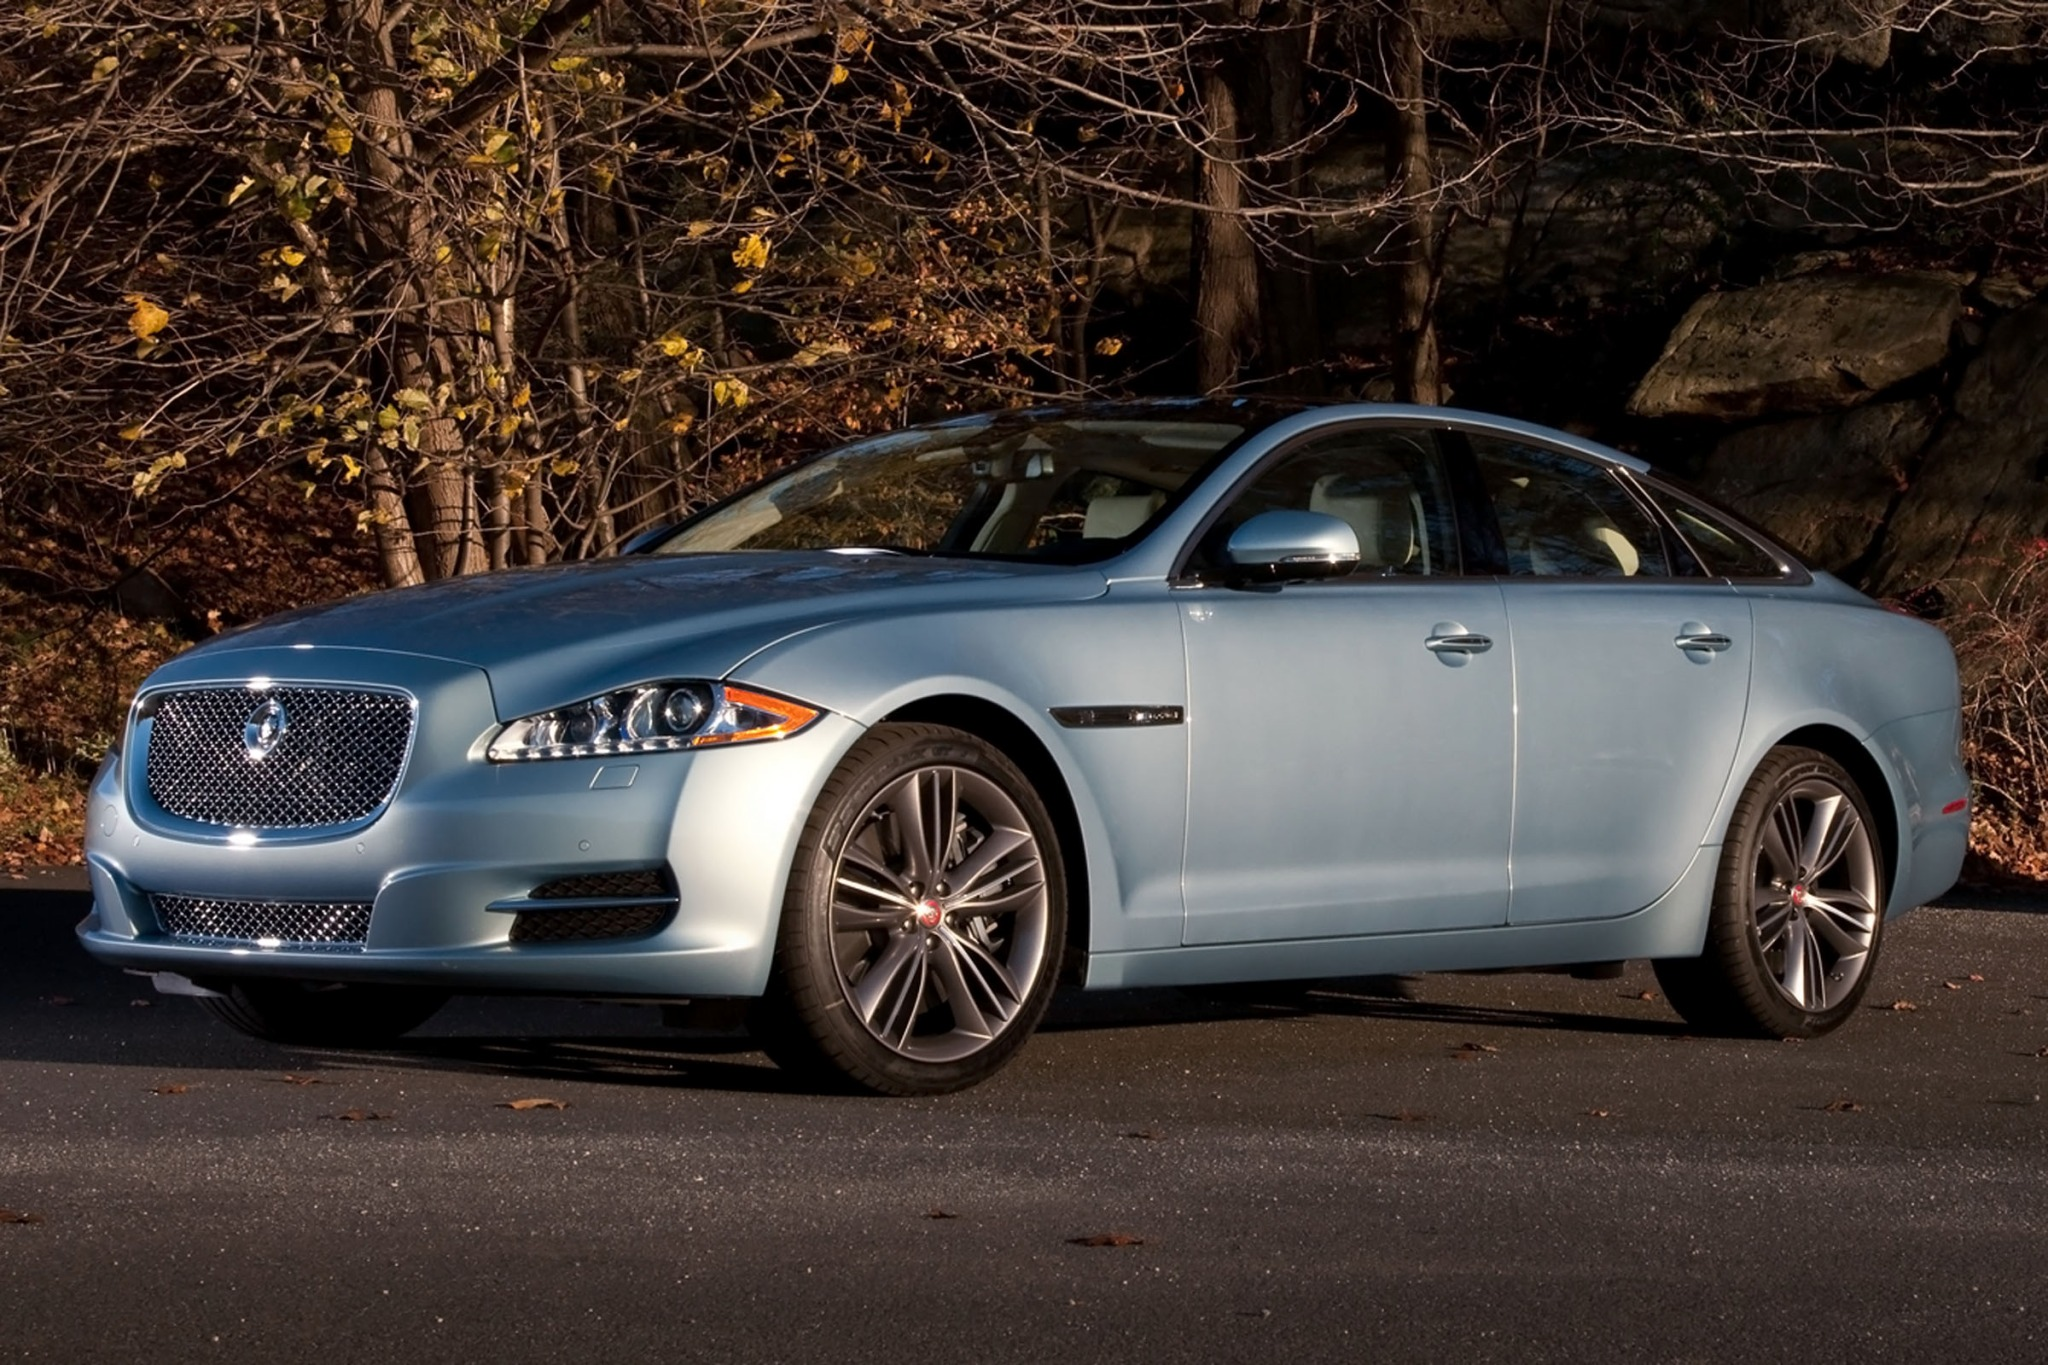 2013 Jaguar XJ Supercharg interior #3